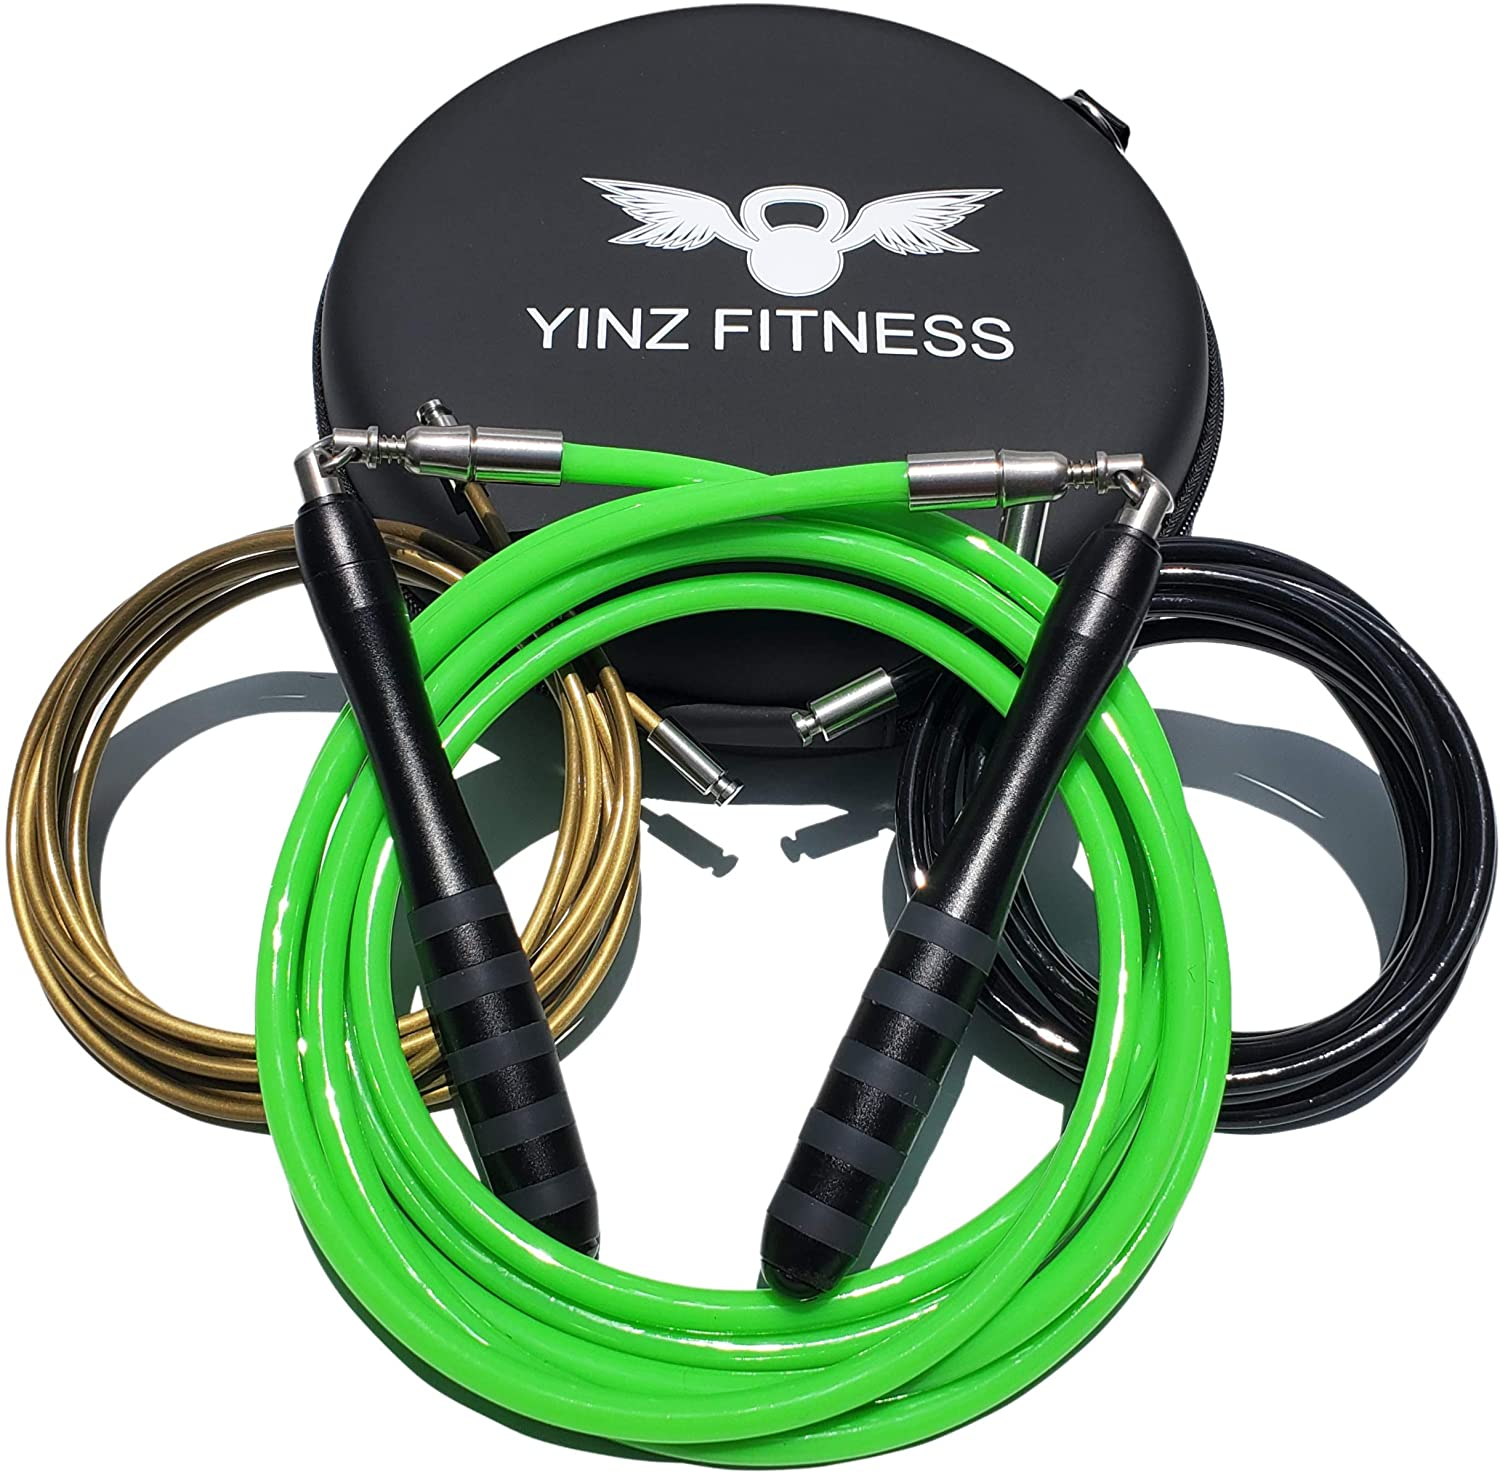 Yinz Fitness Rope - Weighted Jump Rope Set with 3 Interchangeable Cables, Professional Handles and Premium Carrying Case, Get Fit and Get Lean in 2020 with This Home Workout Bundle